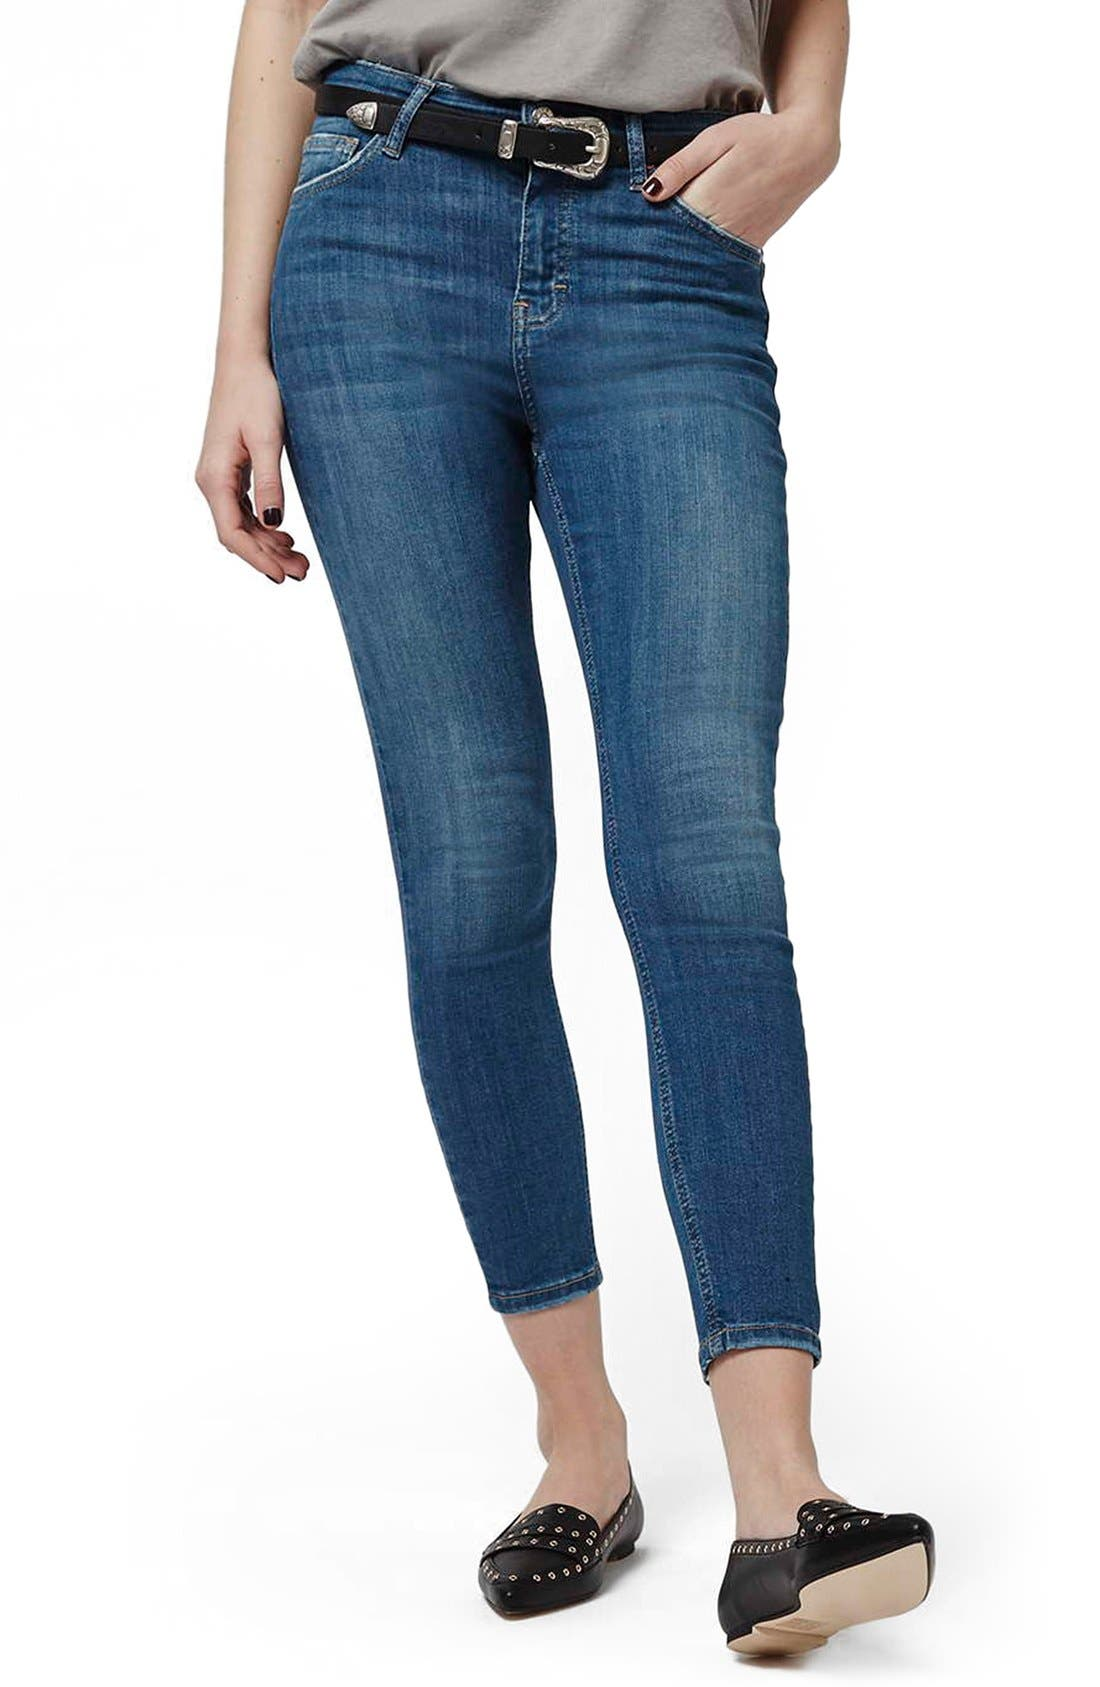 'Jamie' High Waist Ankle Skinny Jeans,                         Main,                         color, Blue